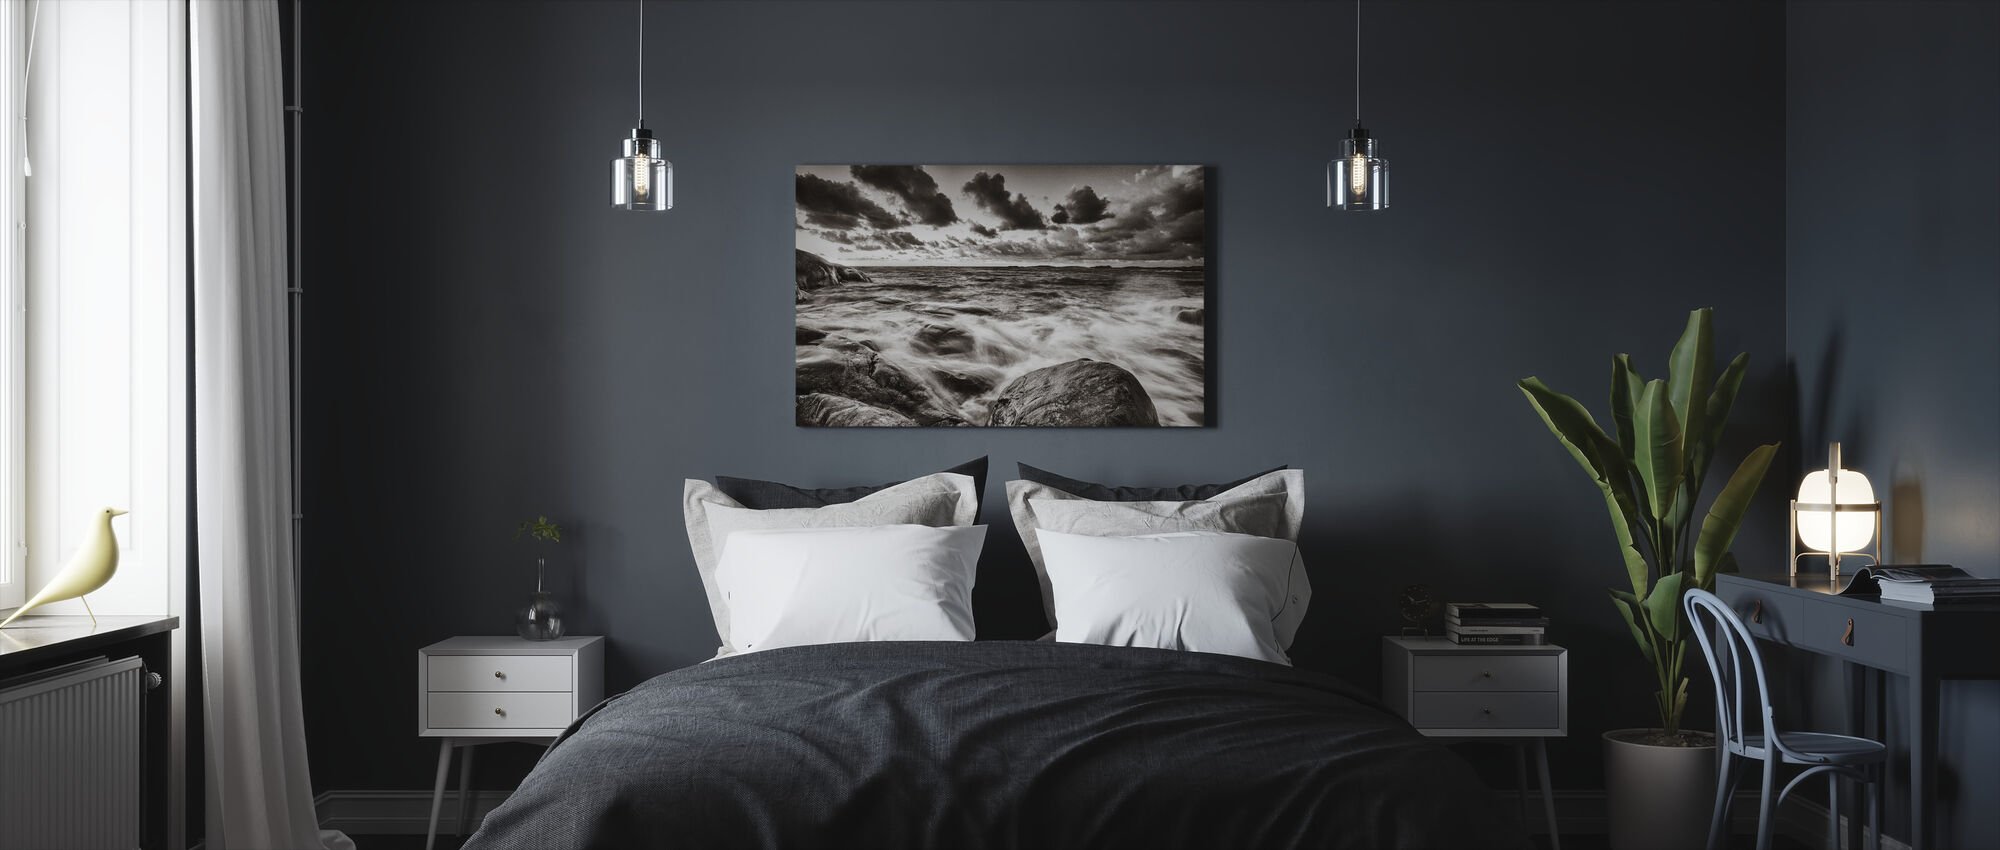 Stormy Sea at Rocks - Canvas print - Bedroom